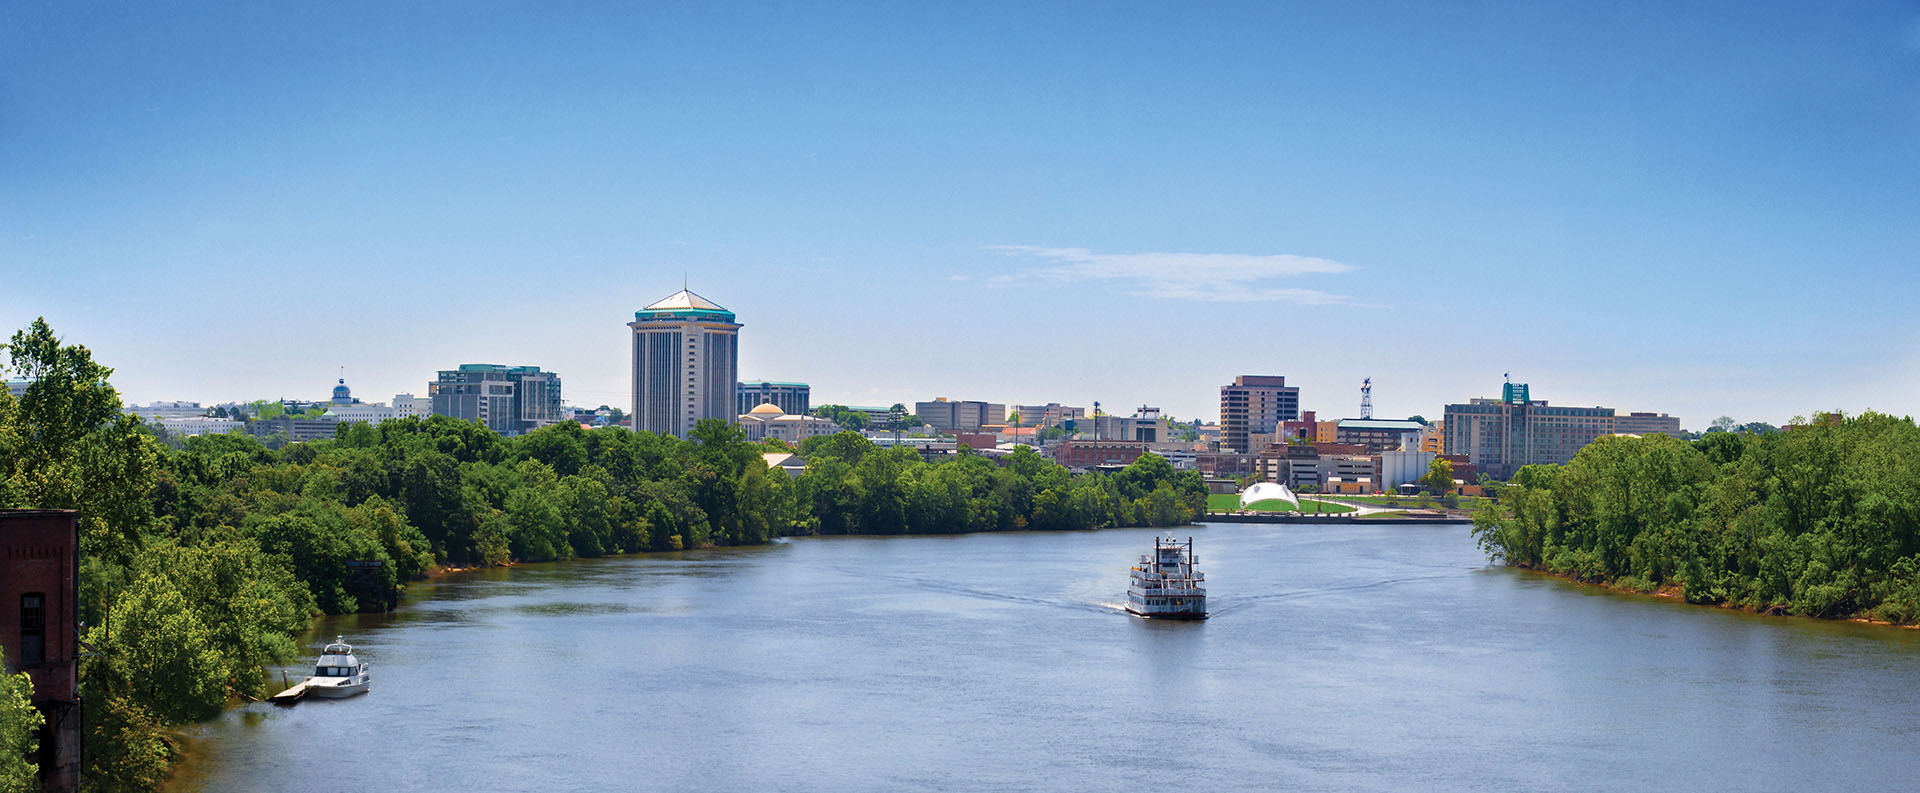 River view of downtown Montgomery 1920 x 783